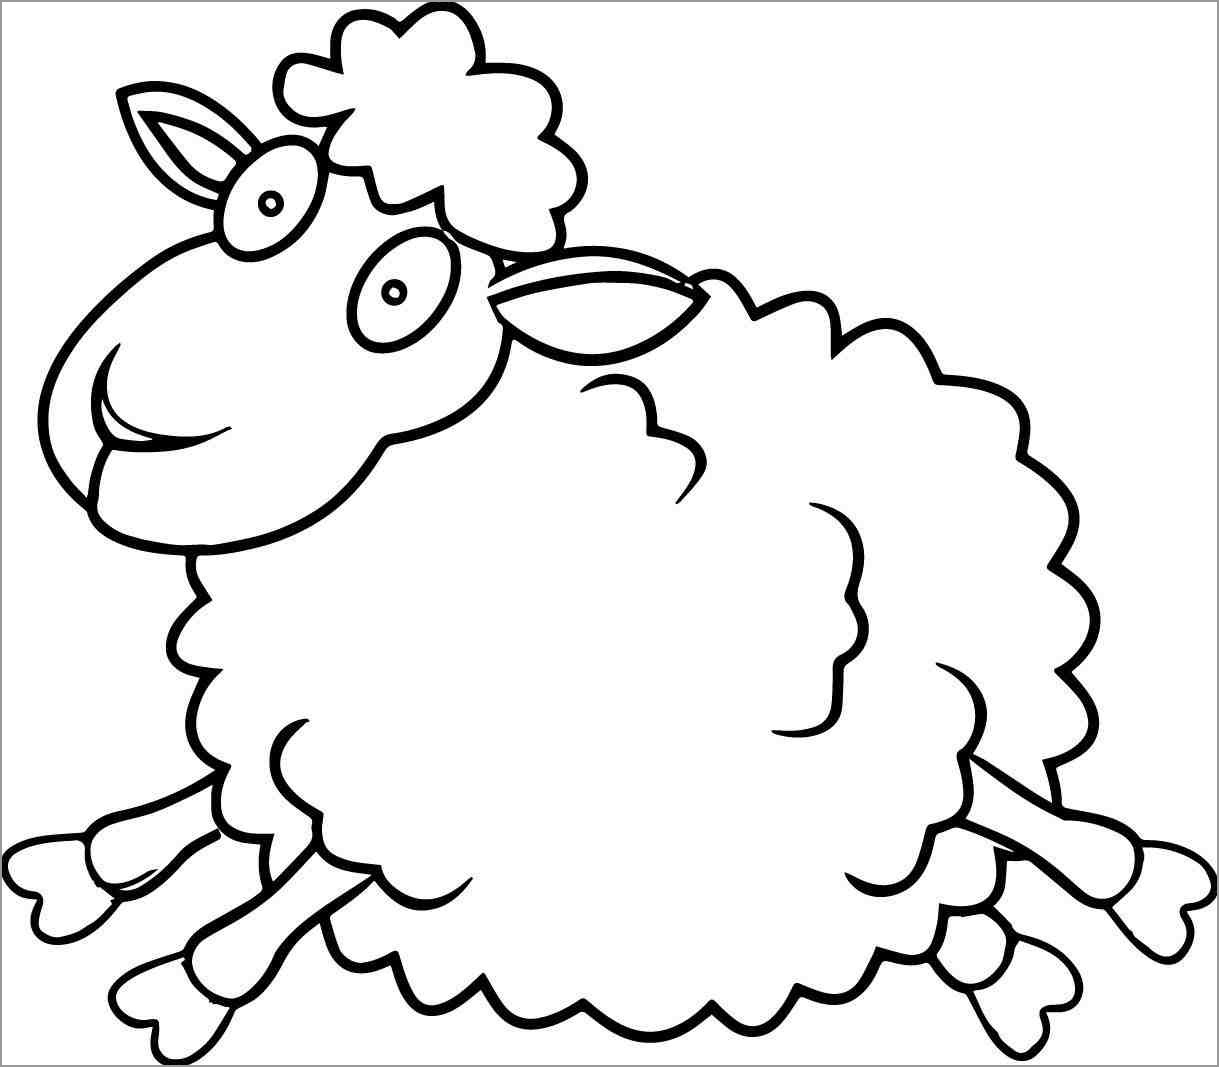 sheep coloring pages free printable free printable sheep face coloring pages for kids cool2bkids coloring free pages sheep printable